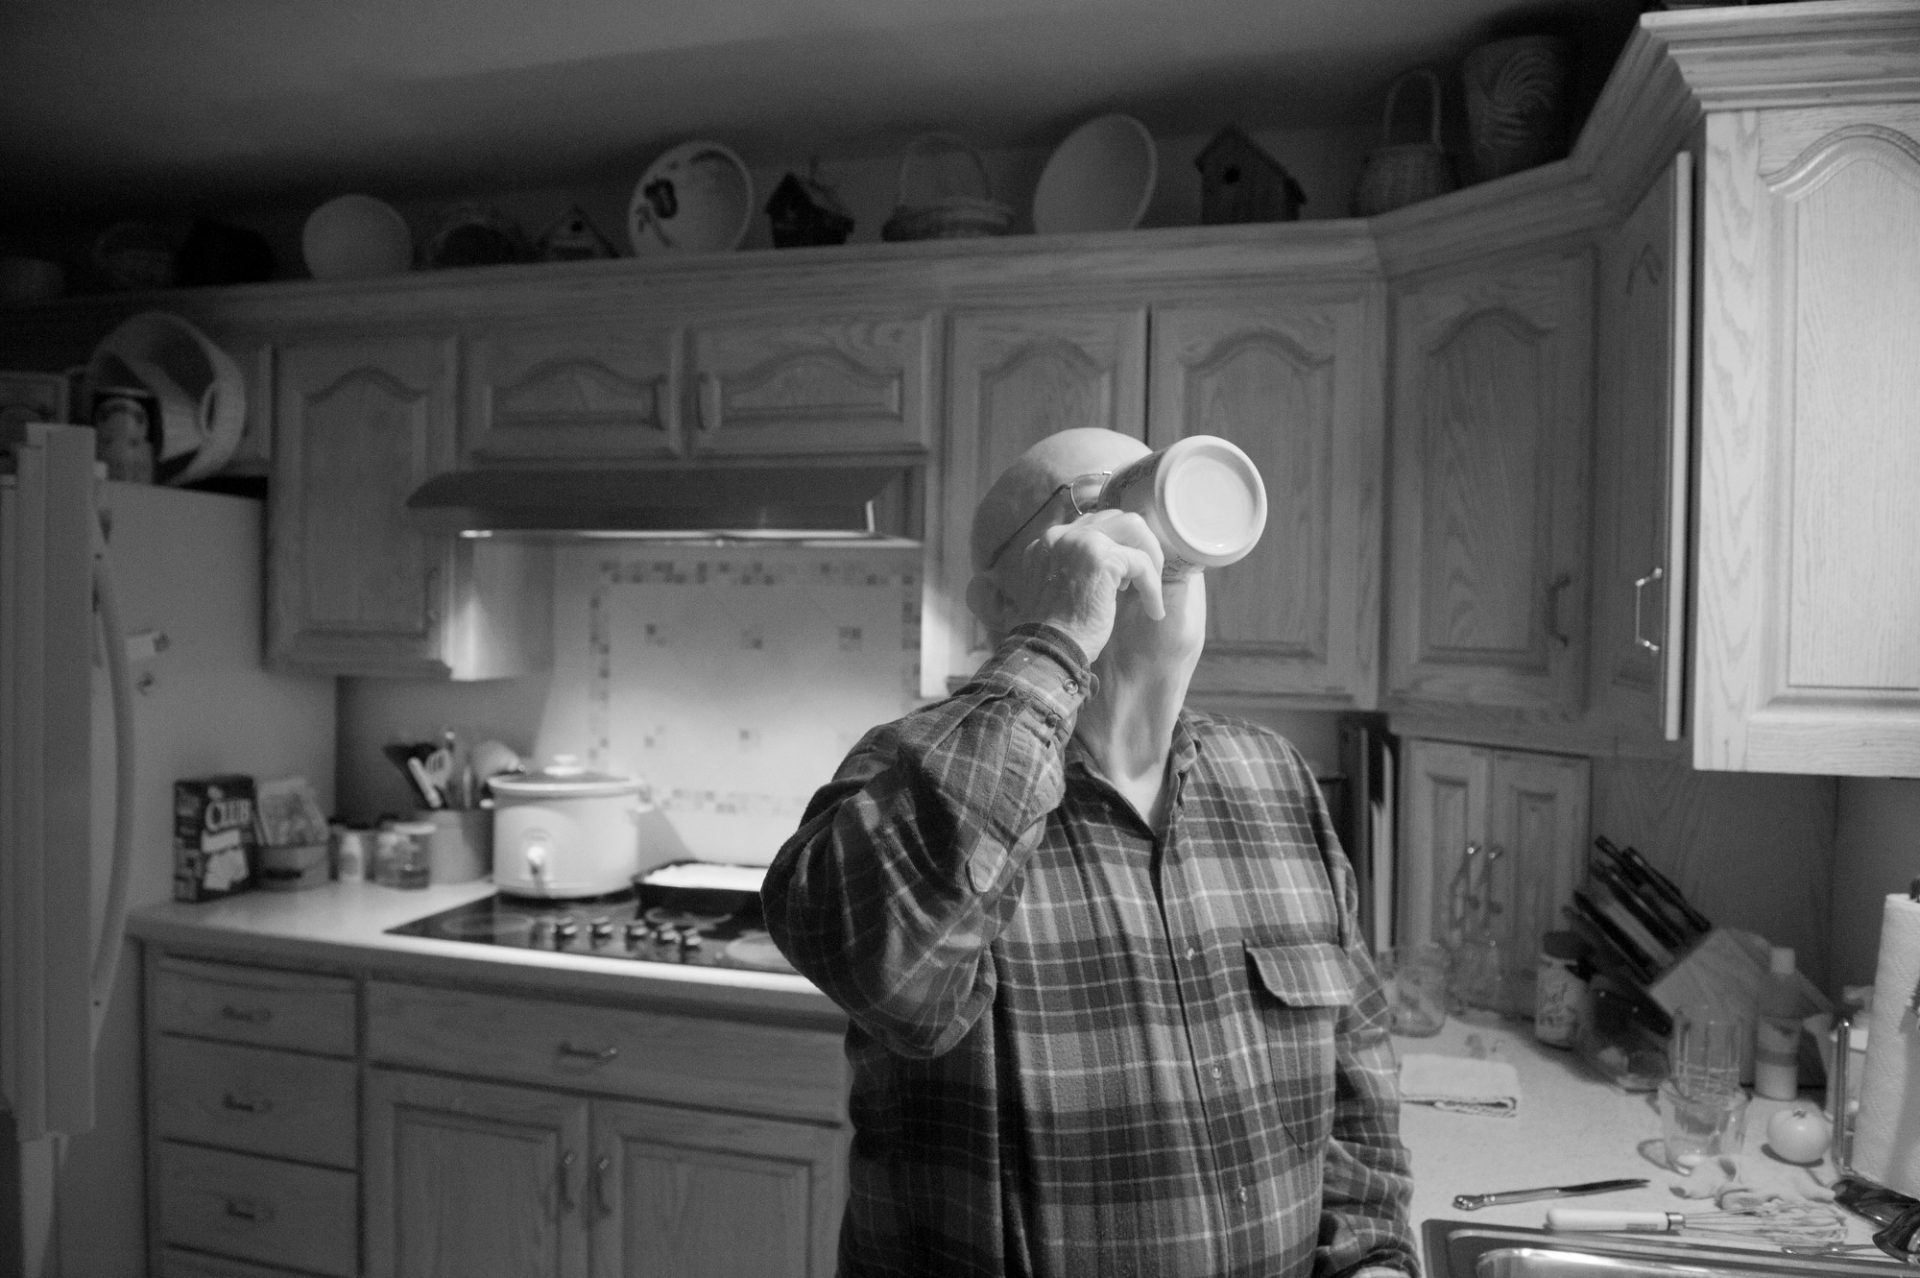 Photo: A man drinks his coffee in Elkhorn, Nebraska.